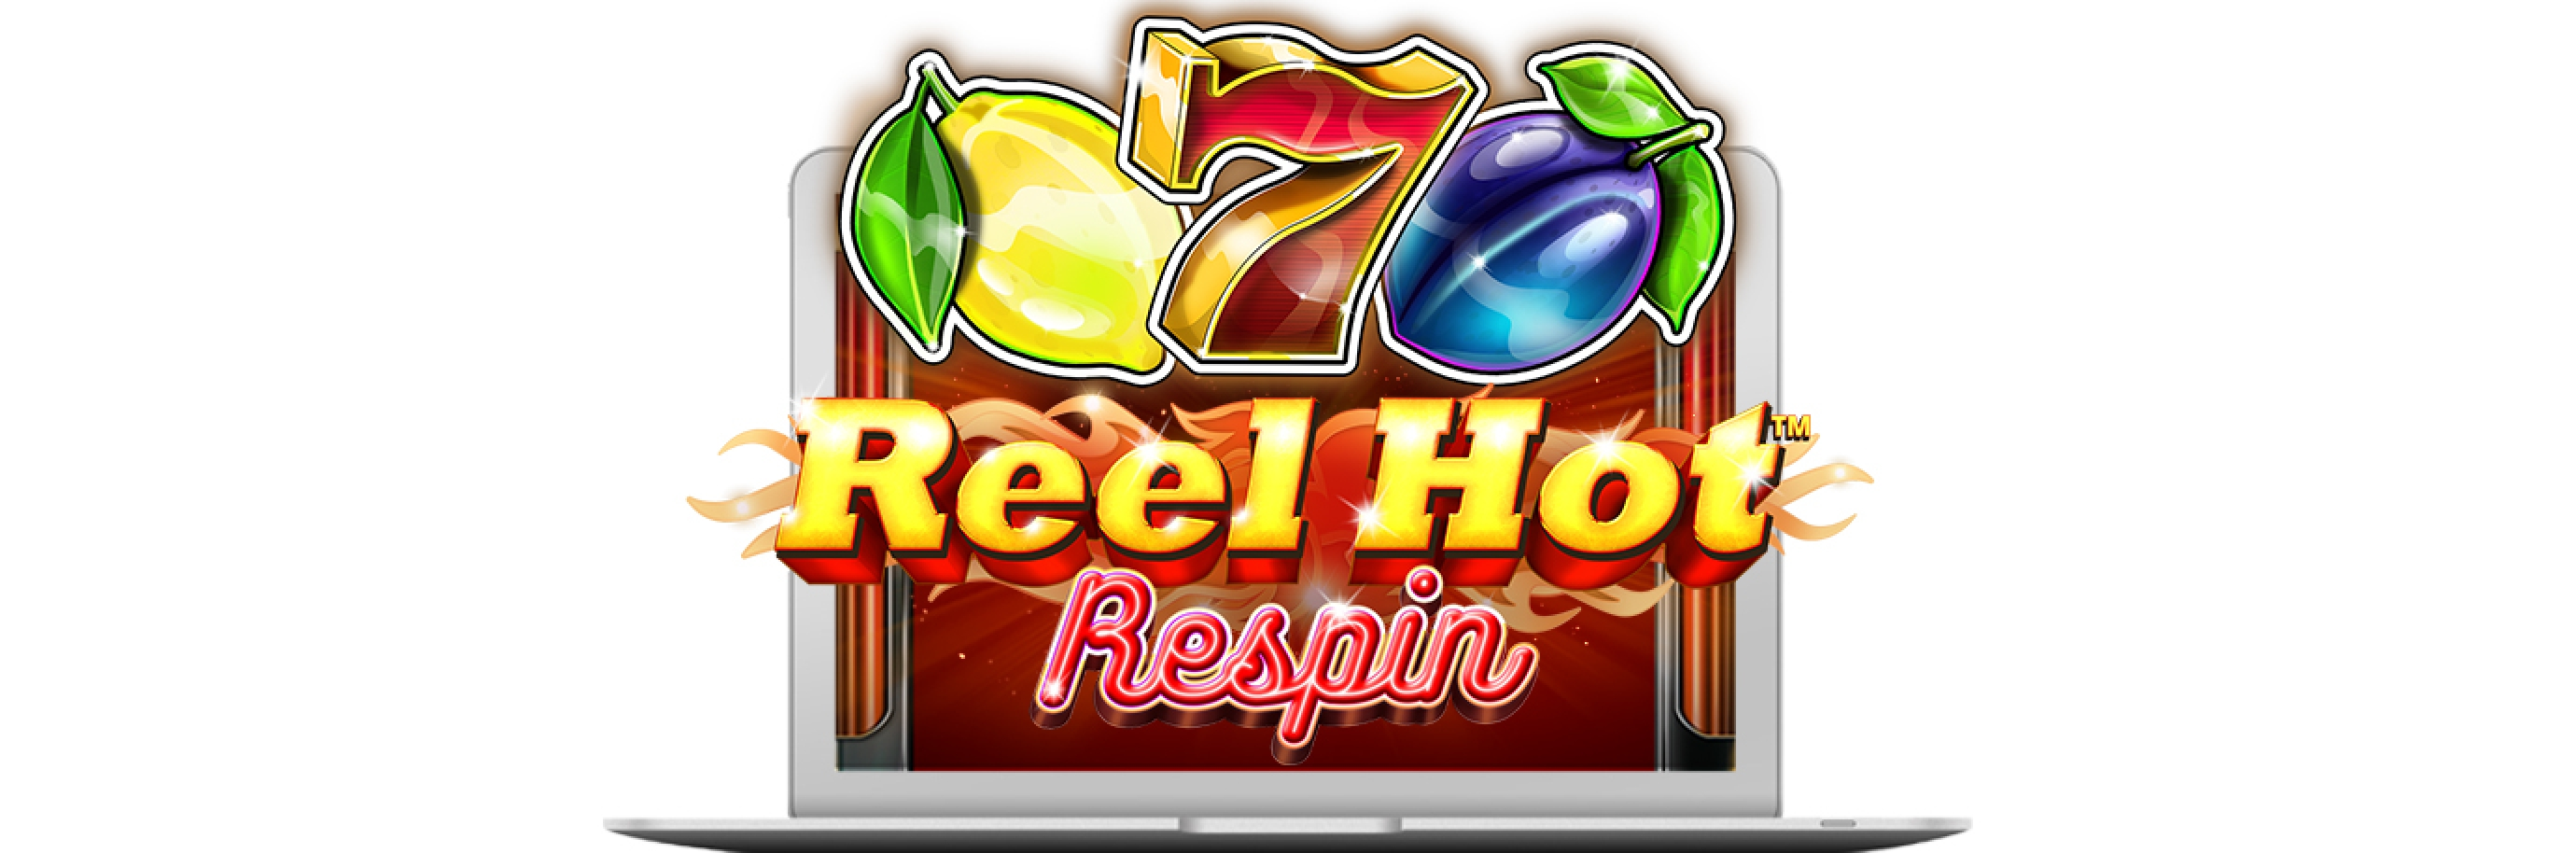 Reels in Reel Hot Respin Slot Game by Synot Games